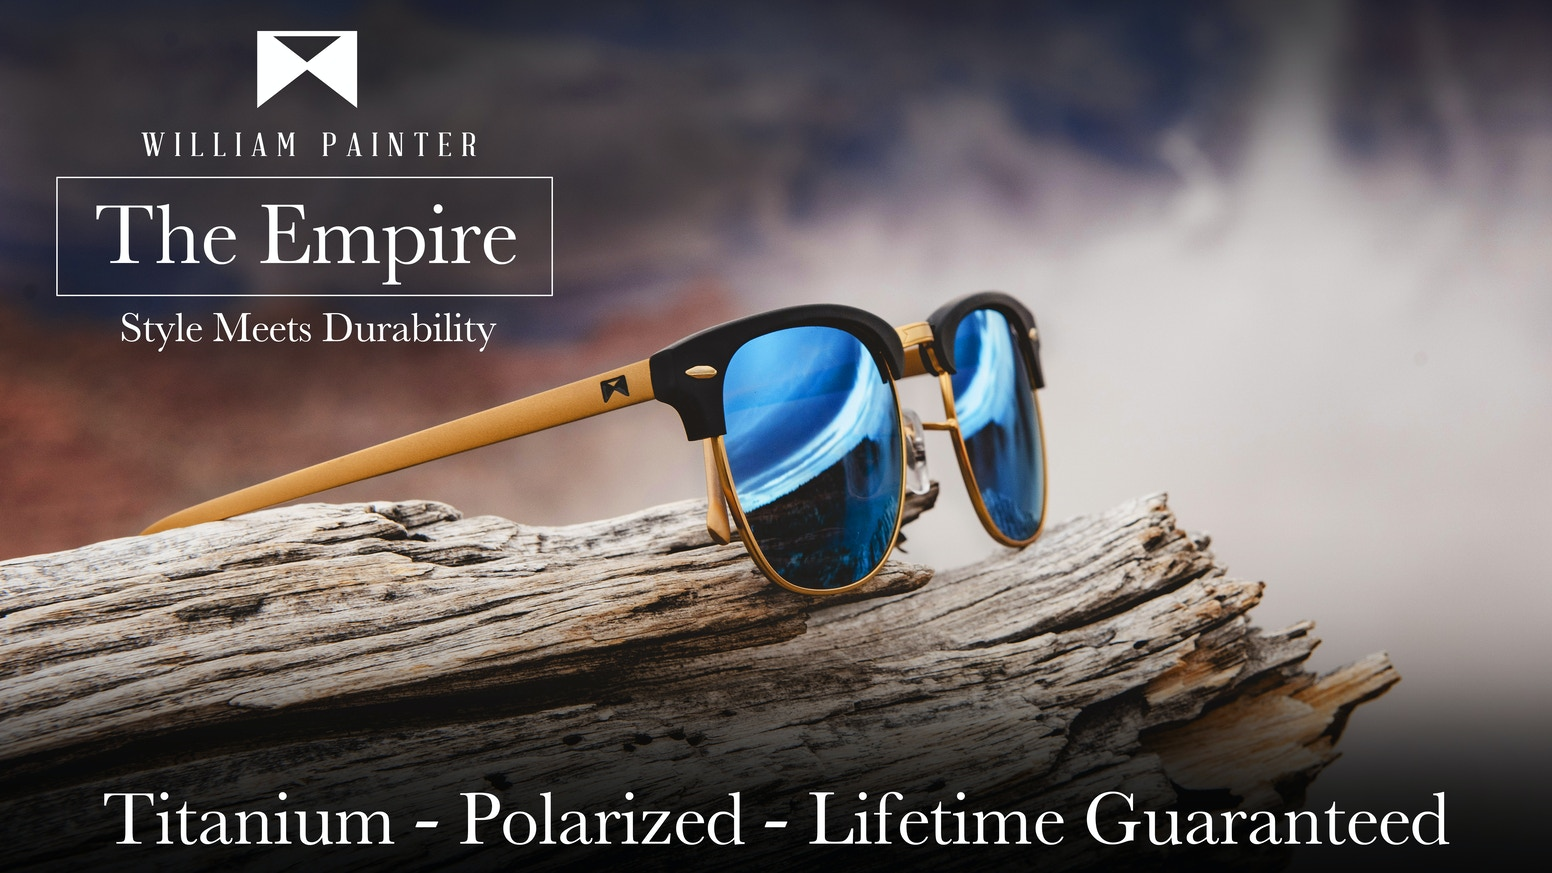 6a5d133415 William Painter s The Empire - Aerospace Grade Titanium frame